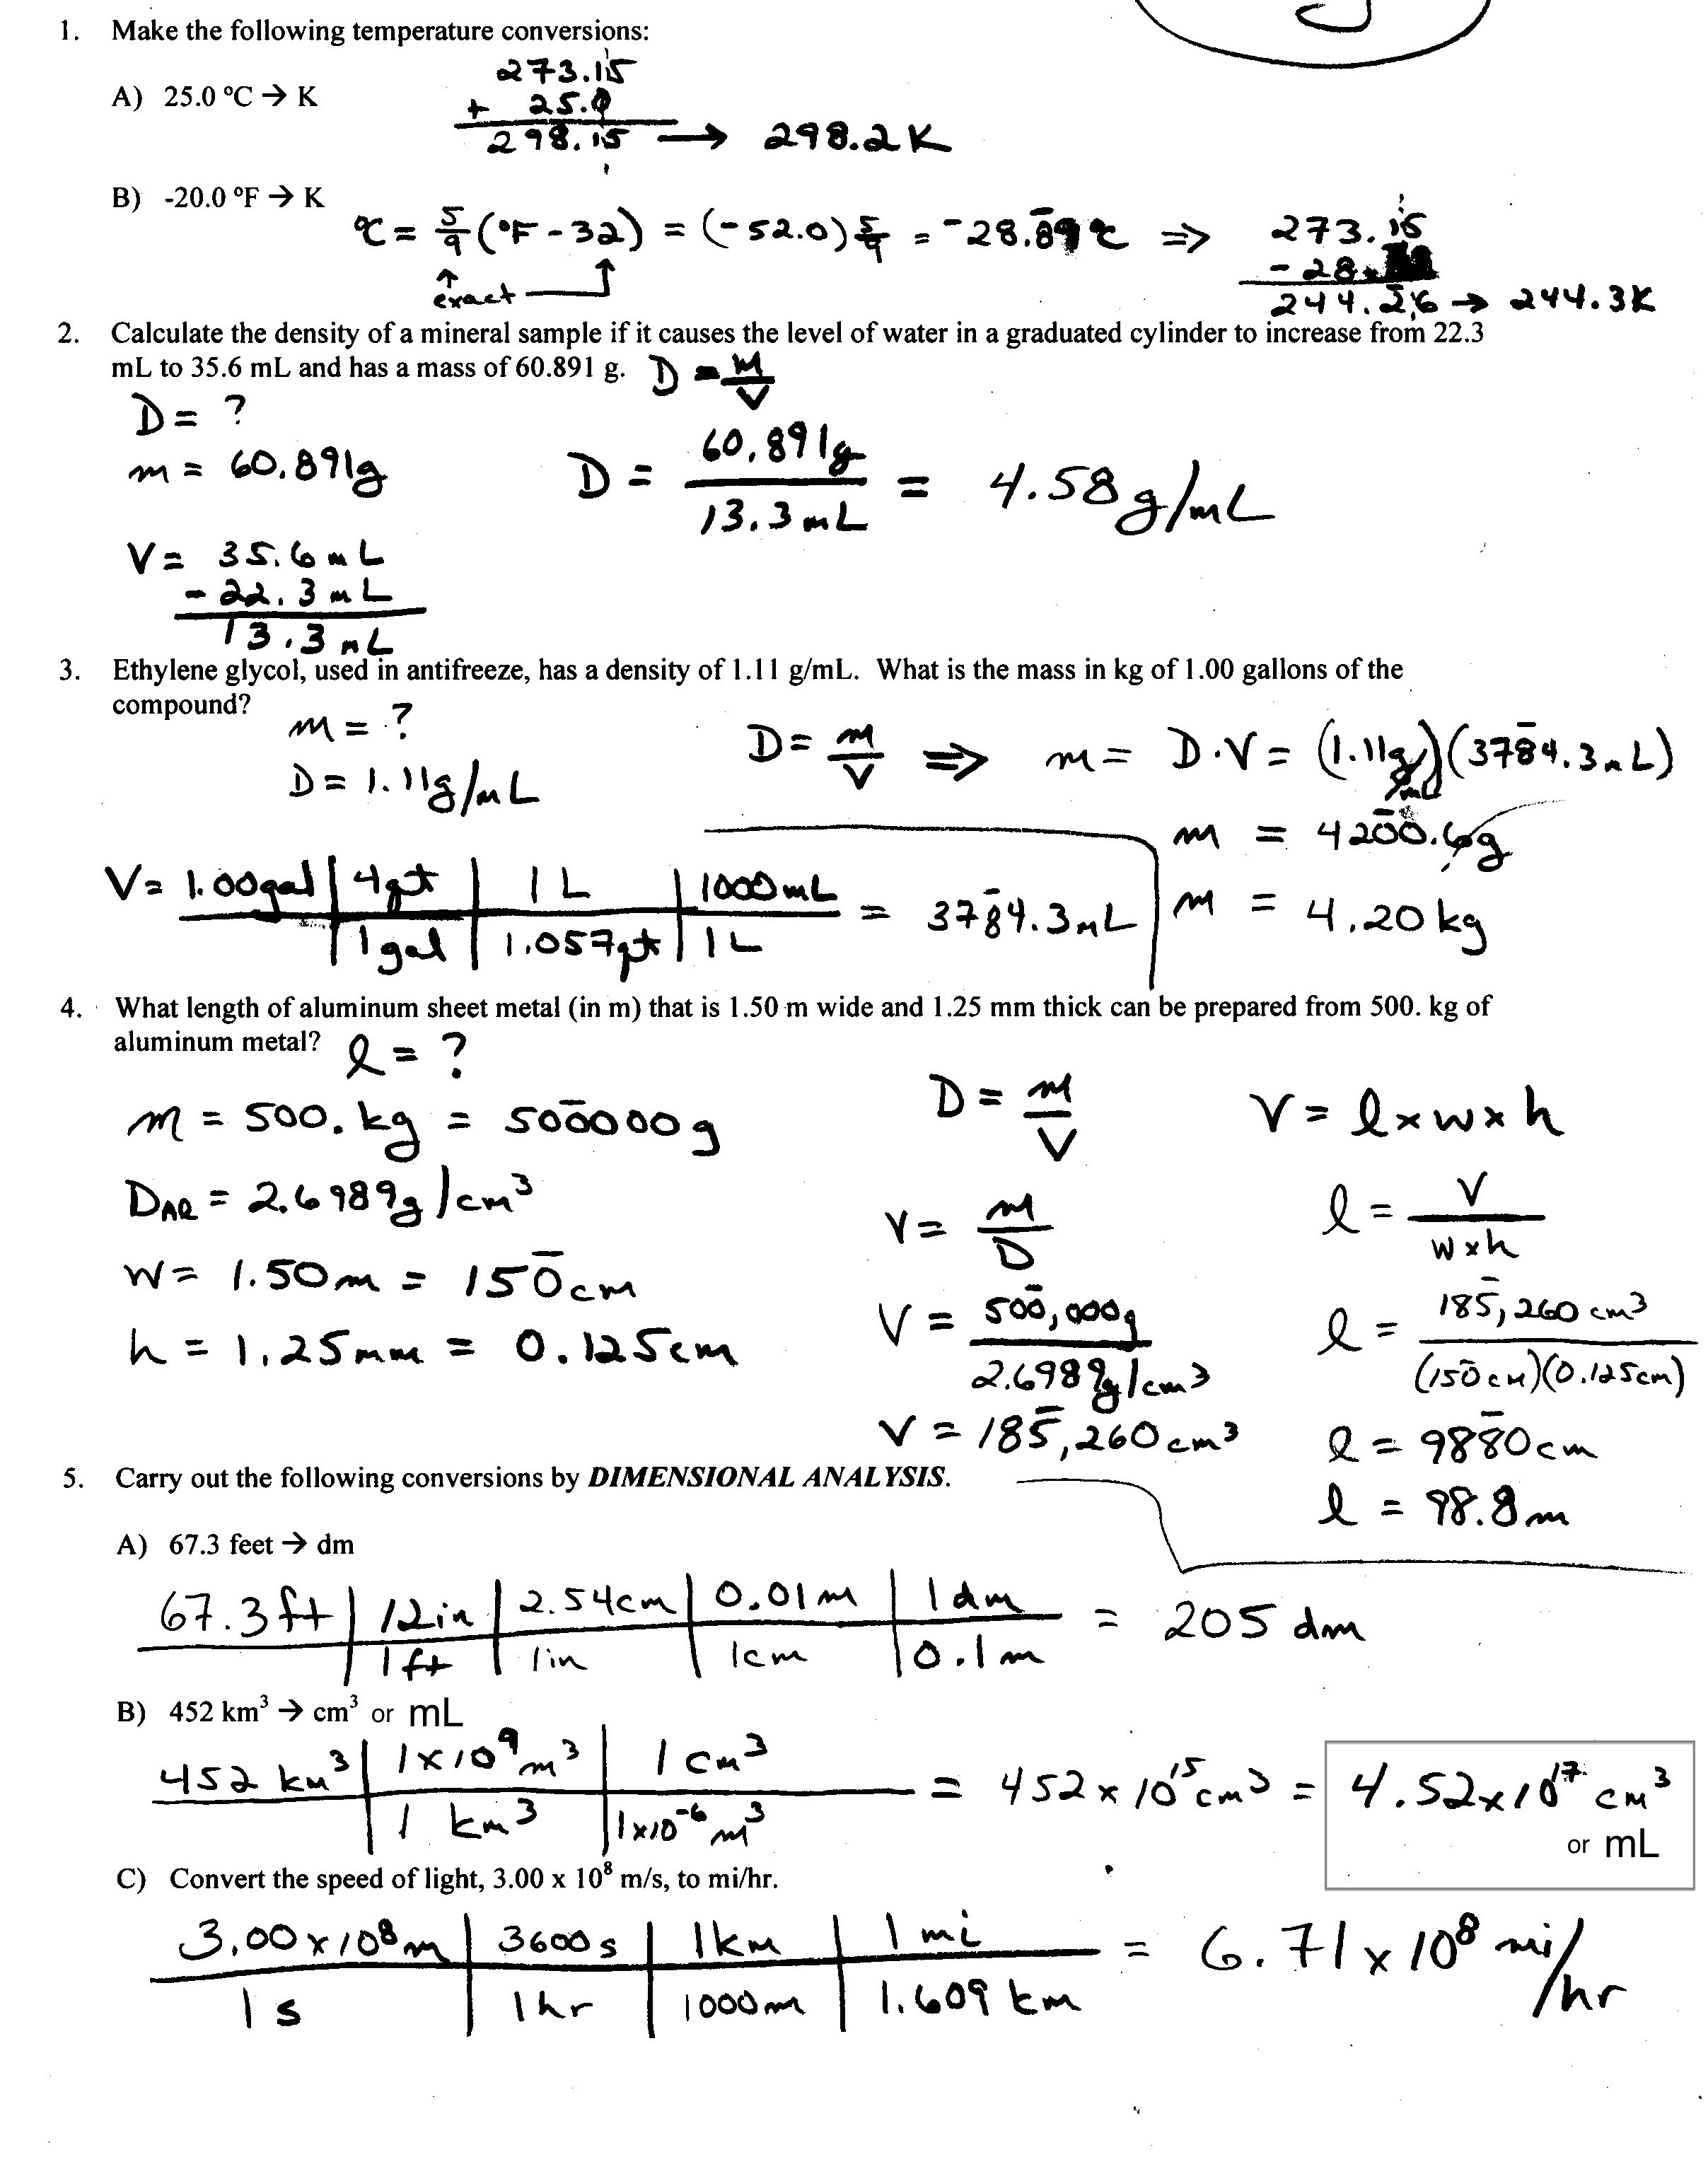 Pictures Chemistry Dimensional Analysis Worksheet - Studioxcess